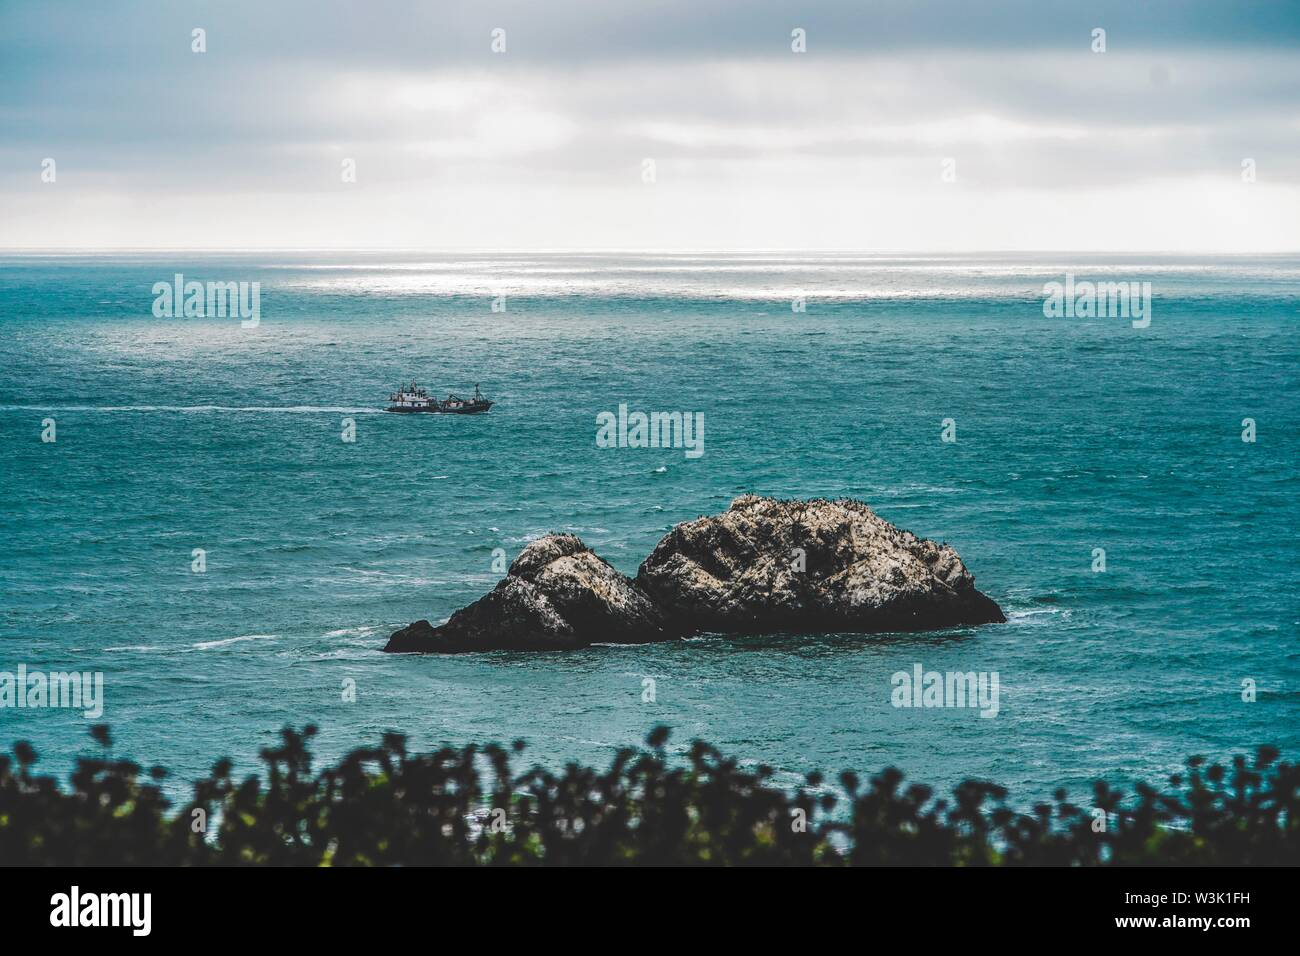 A Big rocks in the middle of the sea and a coast guard sailing in the distance - Stock Image